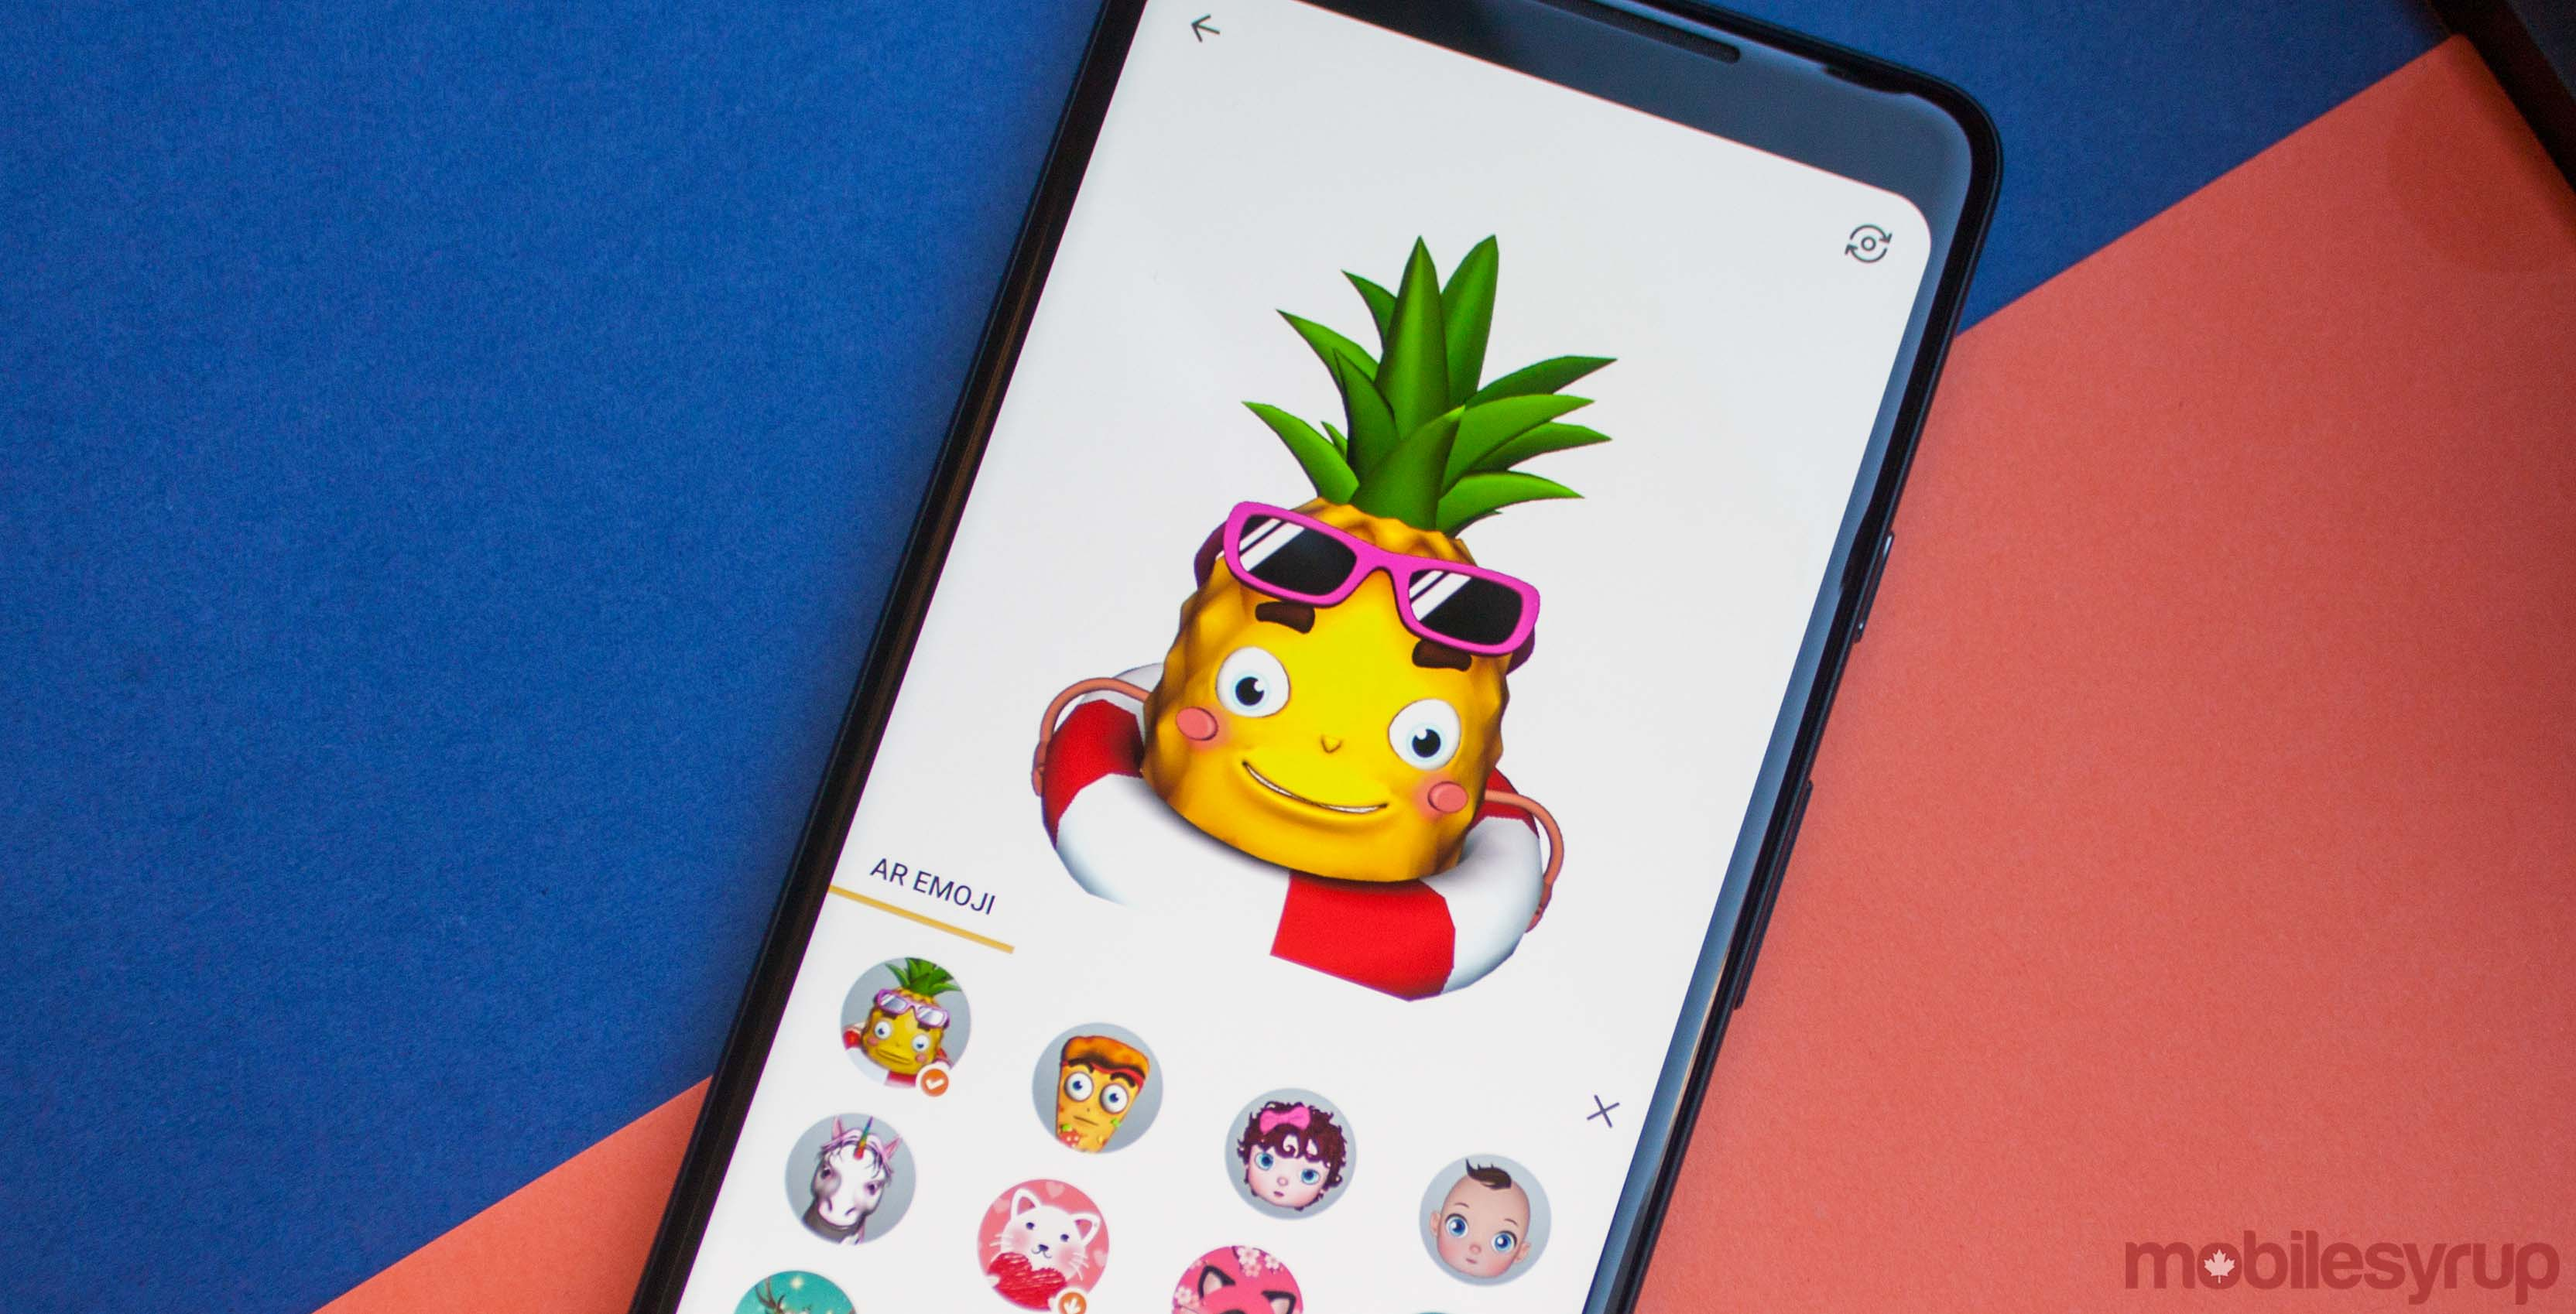 Pineapple AR emoji on Facemoji keyboard